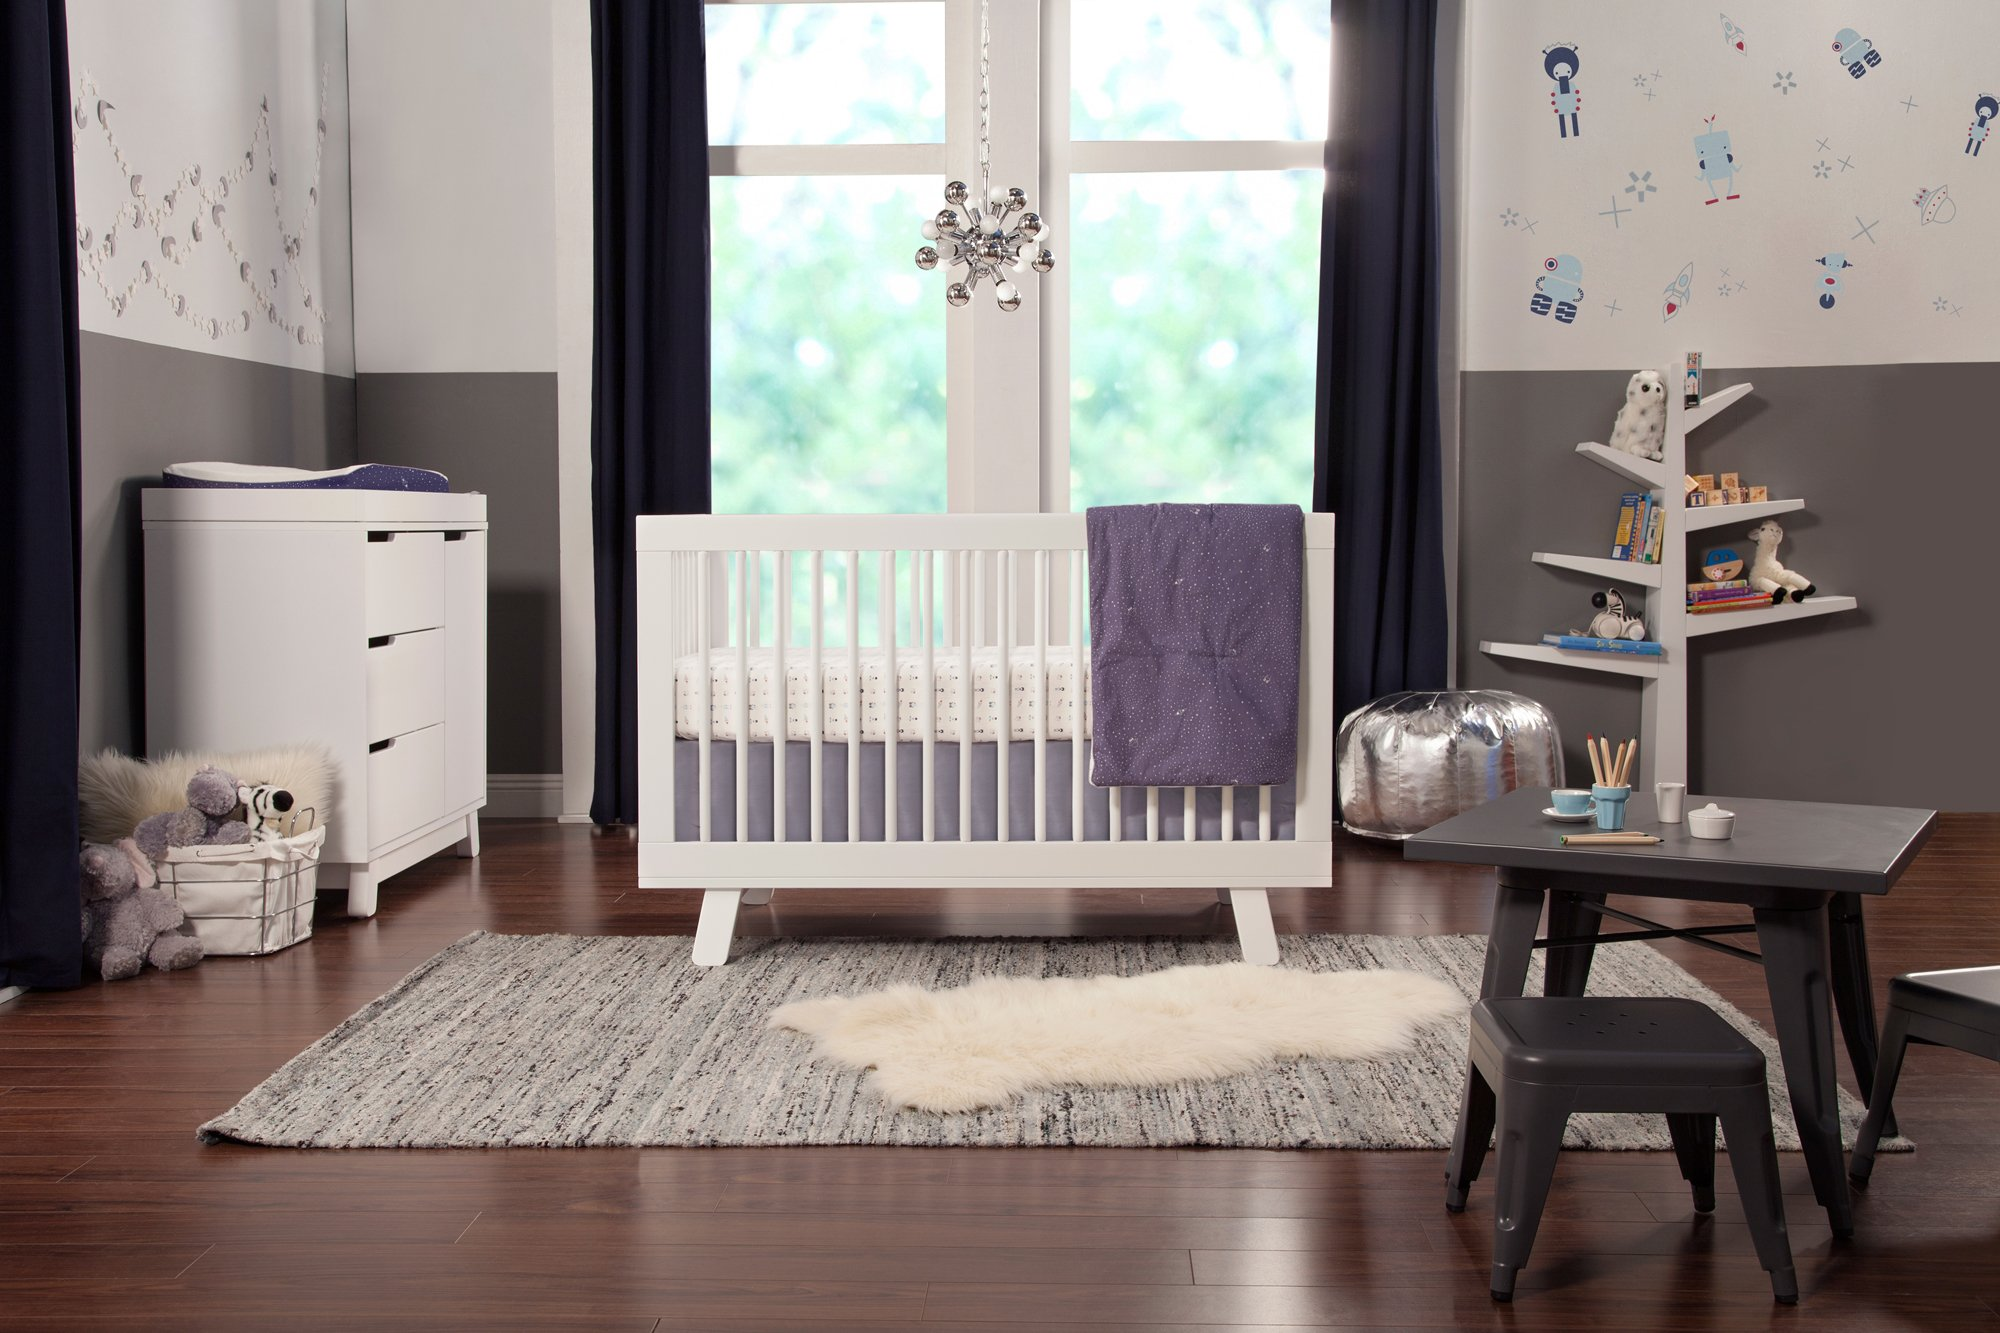 Babyletto Hudson 3-in-1 Convertible Crib with Toddler Bed Conversion Kit, White by babyletto (Image #4)